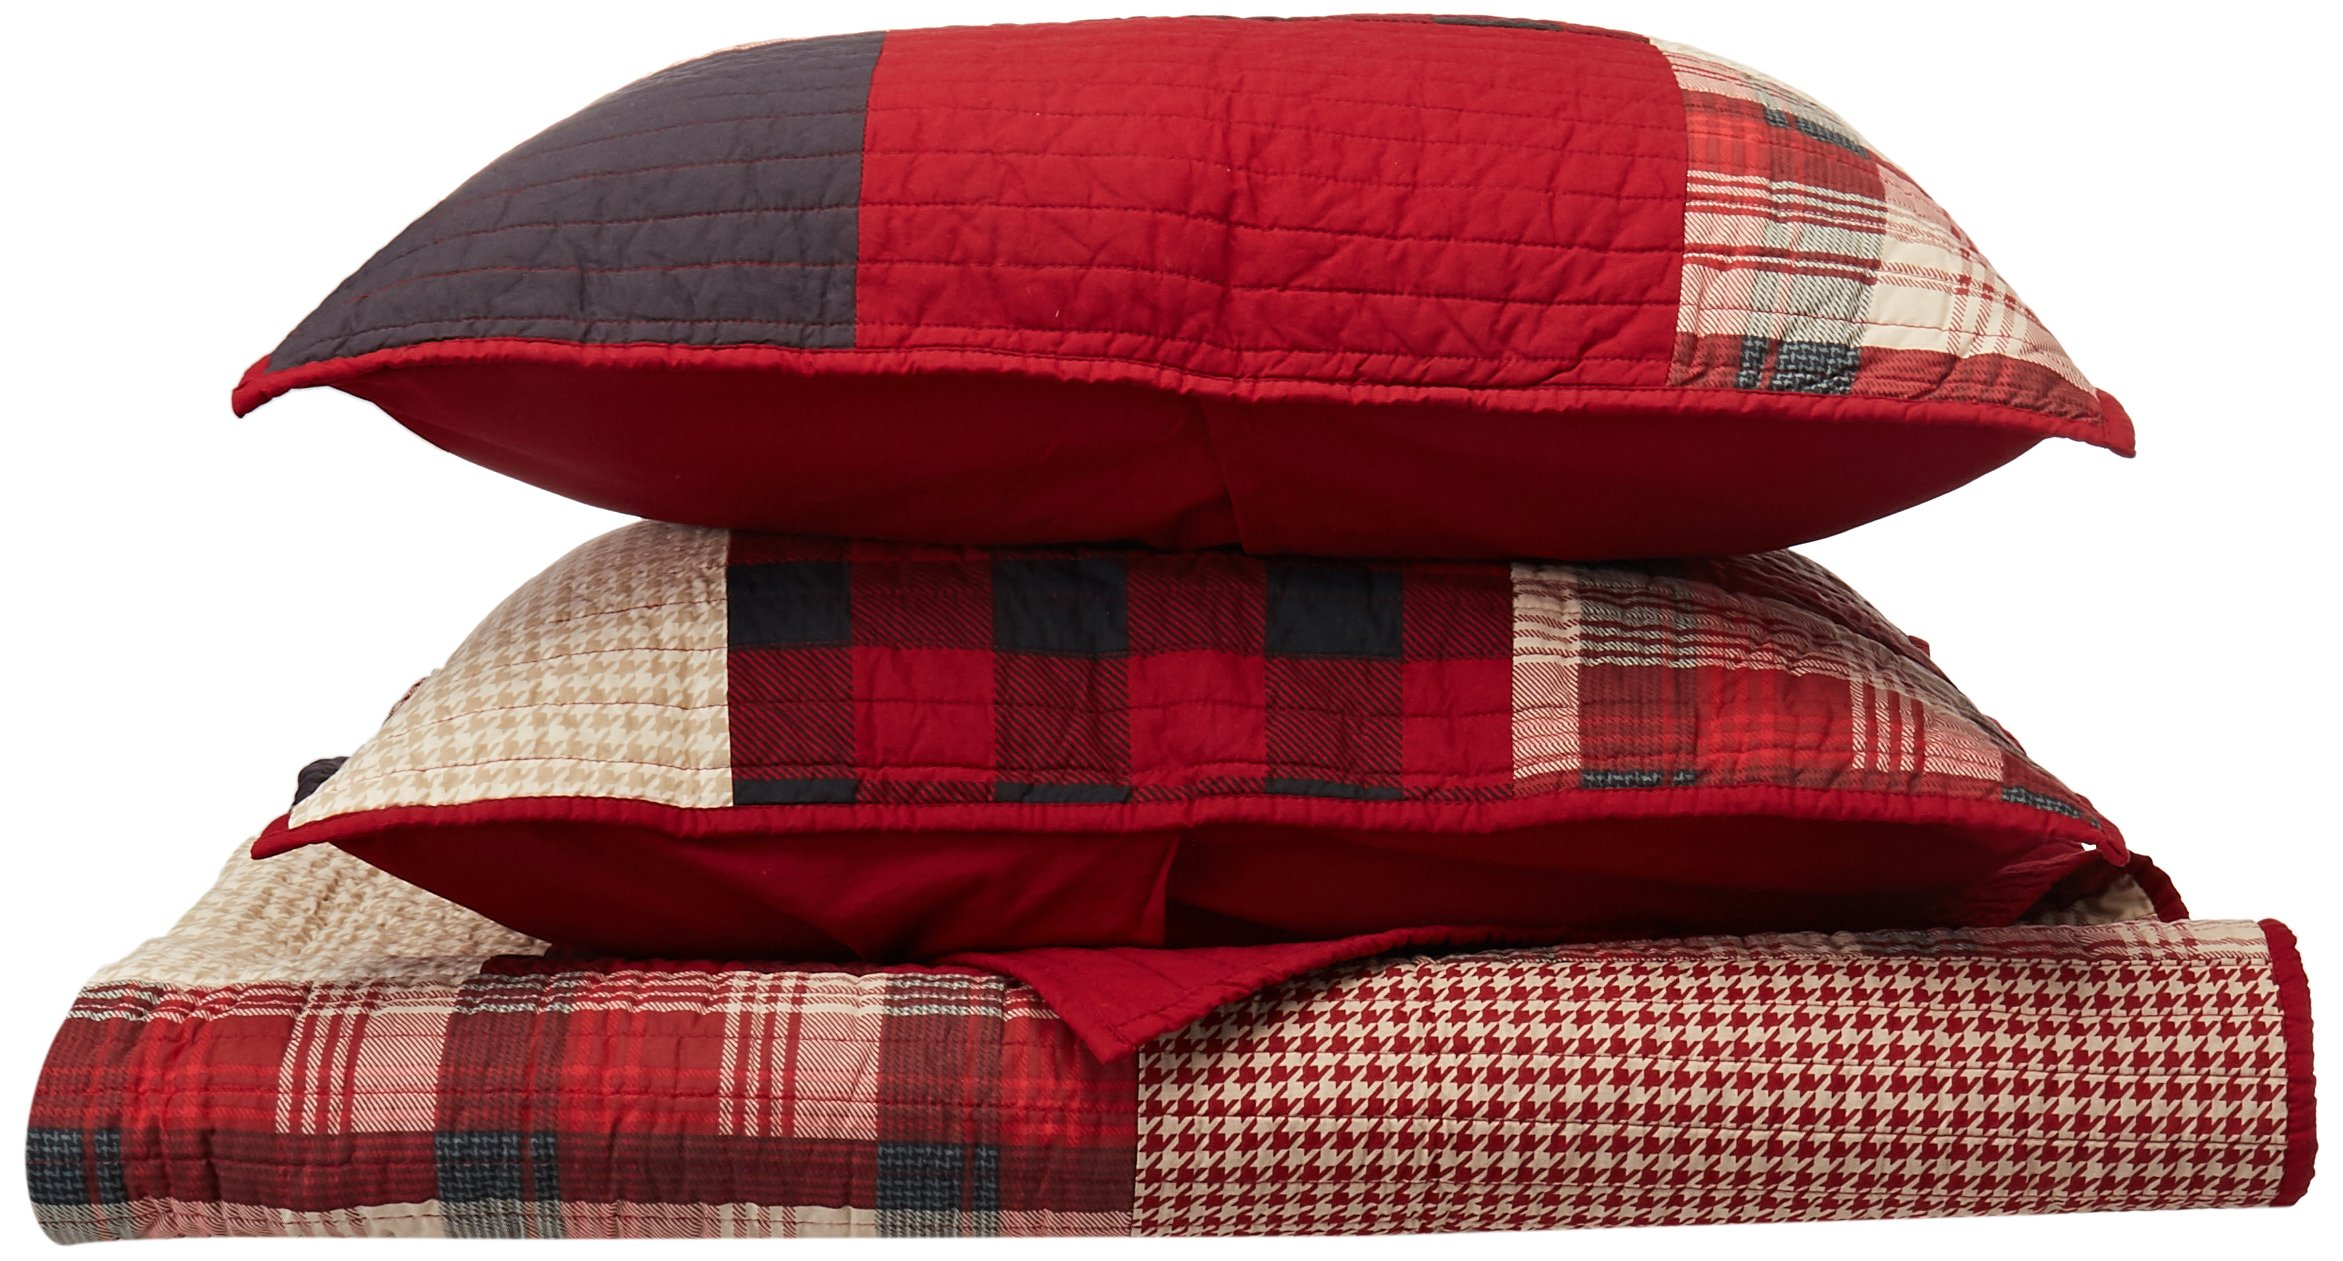 Woolrich Sunset Full/Queen Size Quilt Bedding Set - Red, Plaid – 3 Piece Bedding Quilt Coverlets – Cotton Bed Quilts Quilted Coverlet